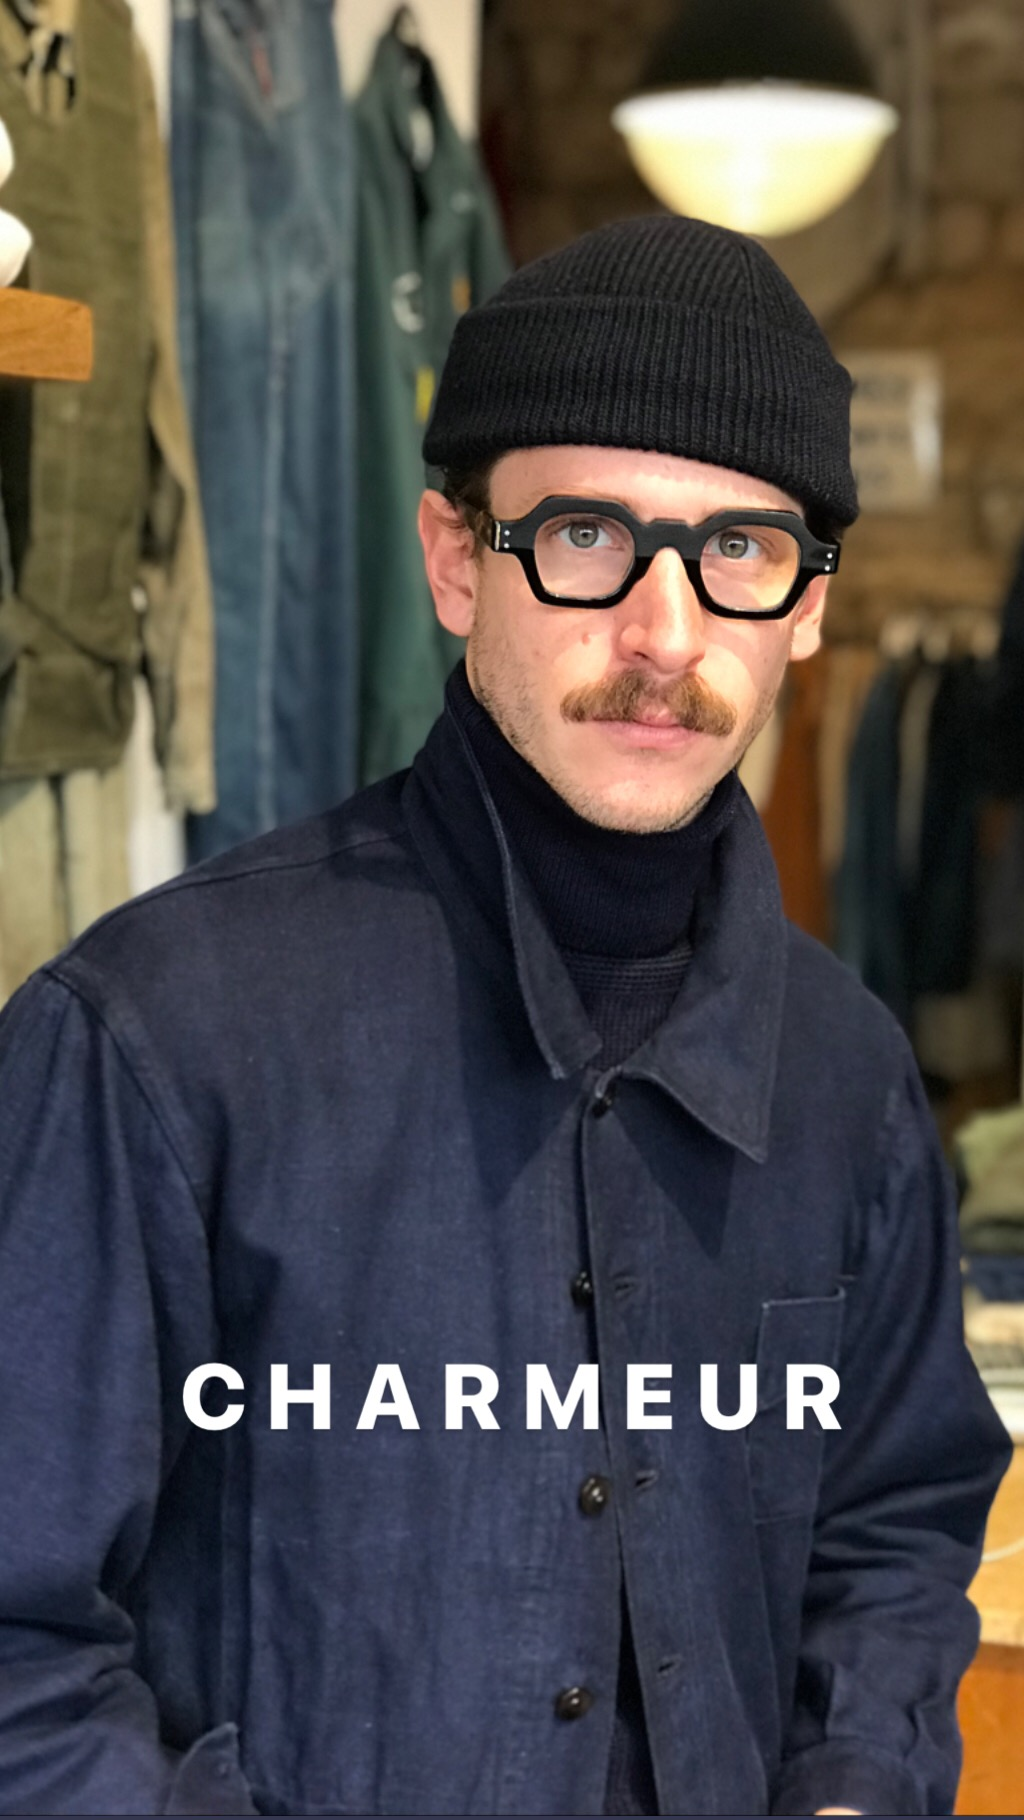 CHARMEUR JEAN PHILIPPE JOLY